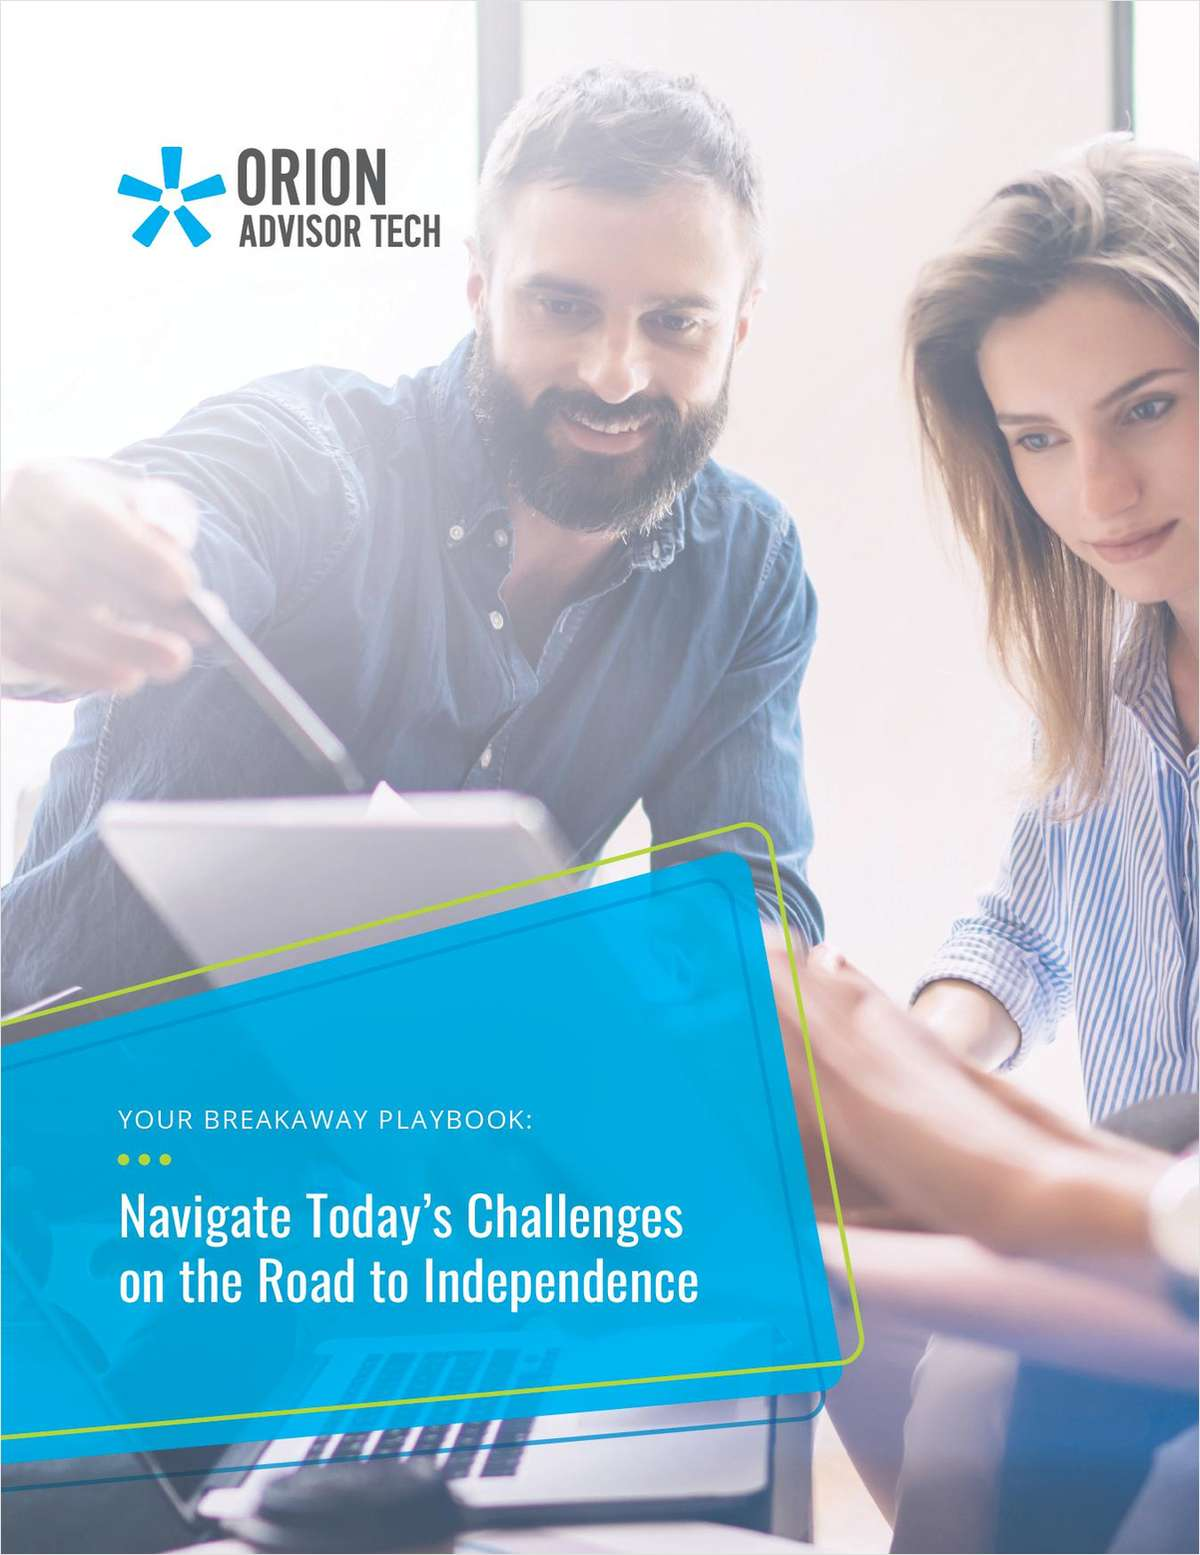 Your Breakaway Playbook: Navigating Today's Challenges on the Road to Independence